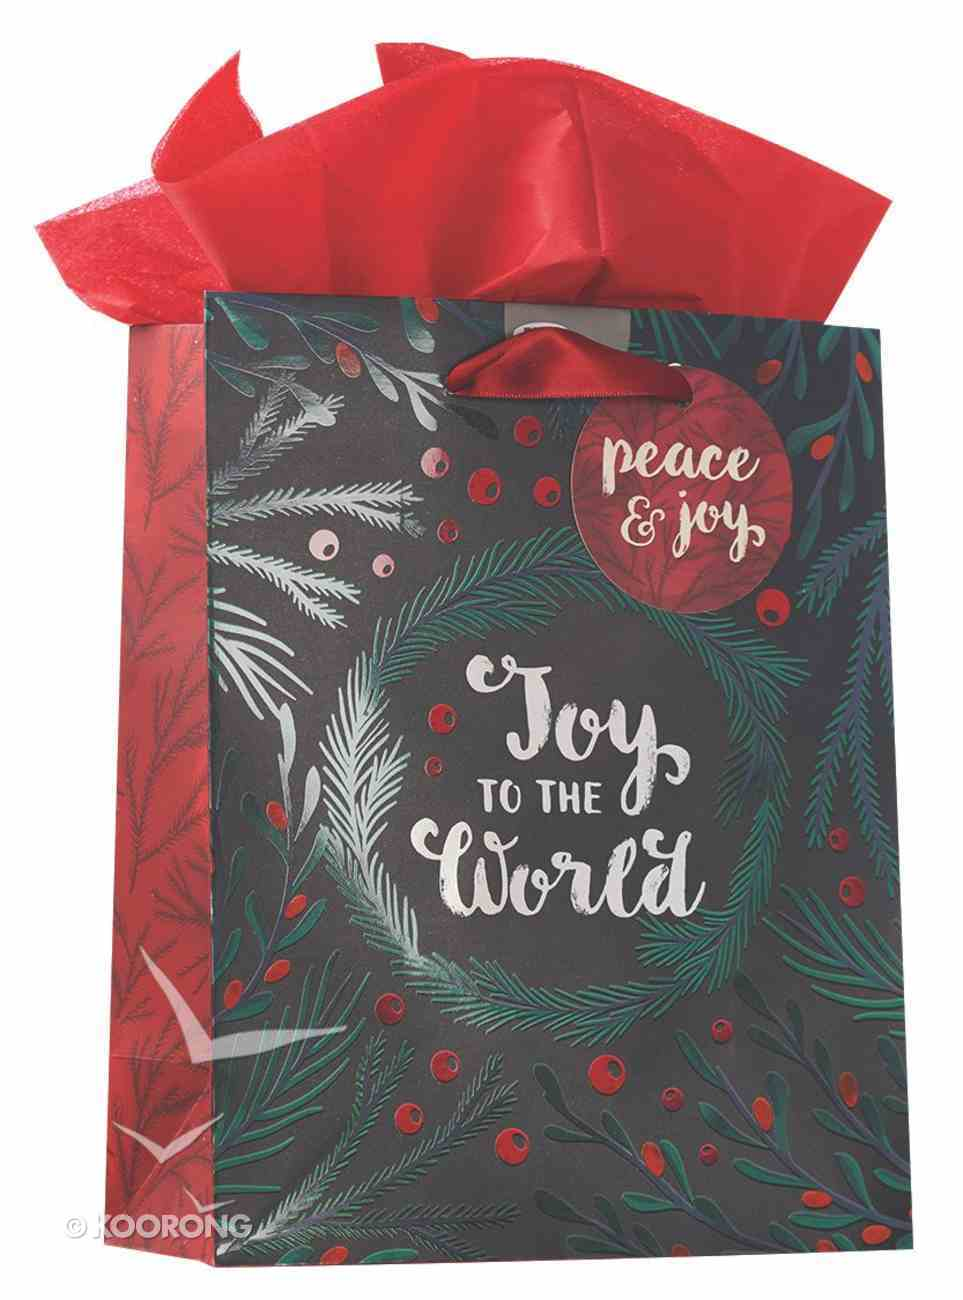 Christmas Gift Bag Medium: Joy to the World With Tissue Paper, Gift Tag & Satin Ribbon Handles Stationery